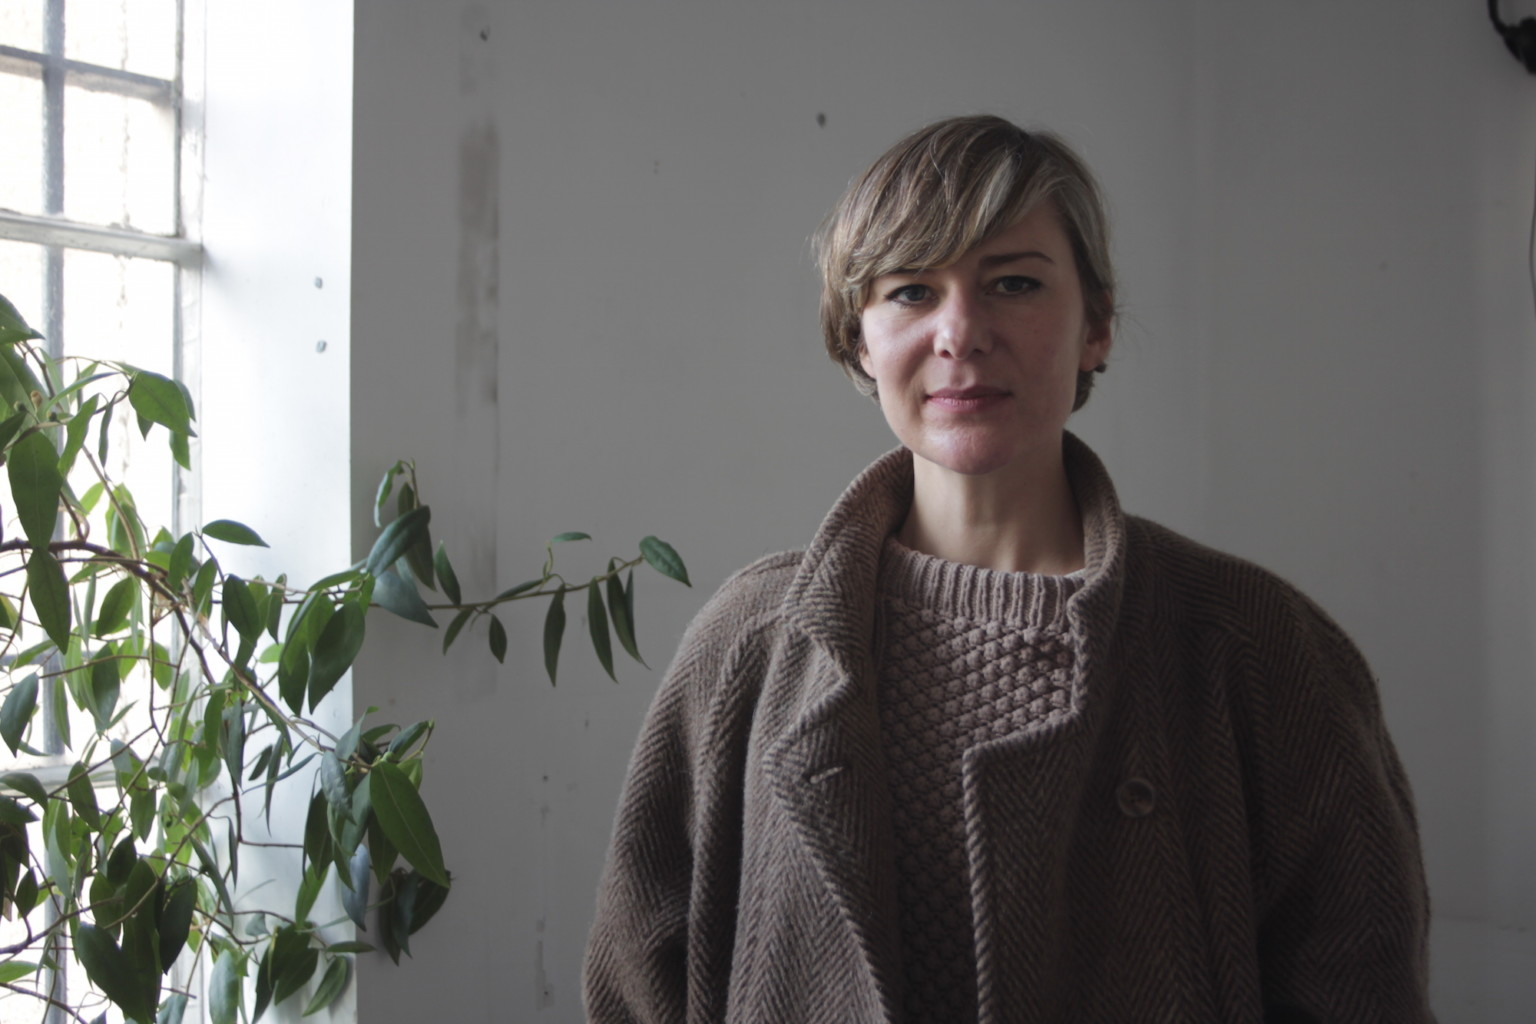 Moving Company Reviews >> Glasgow artist Sarah Forrest wins 2017/18 Margaret Tait ...